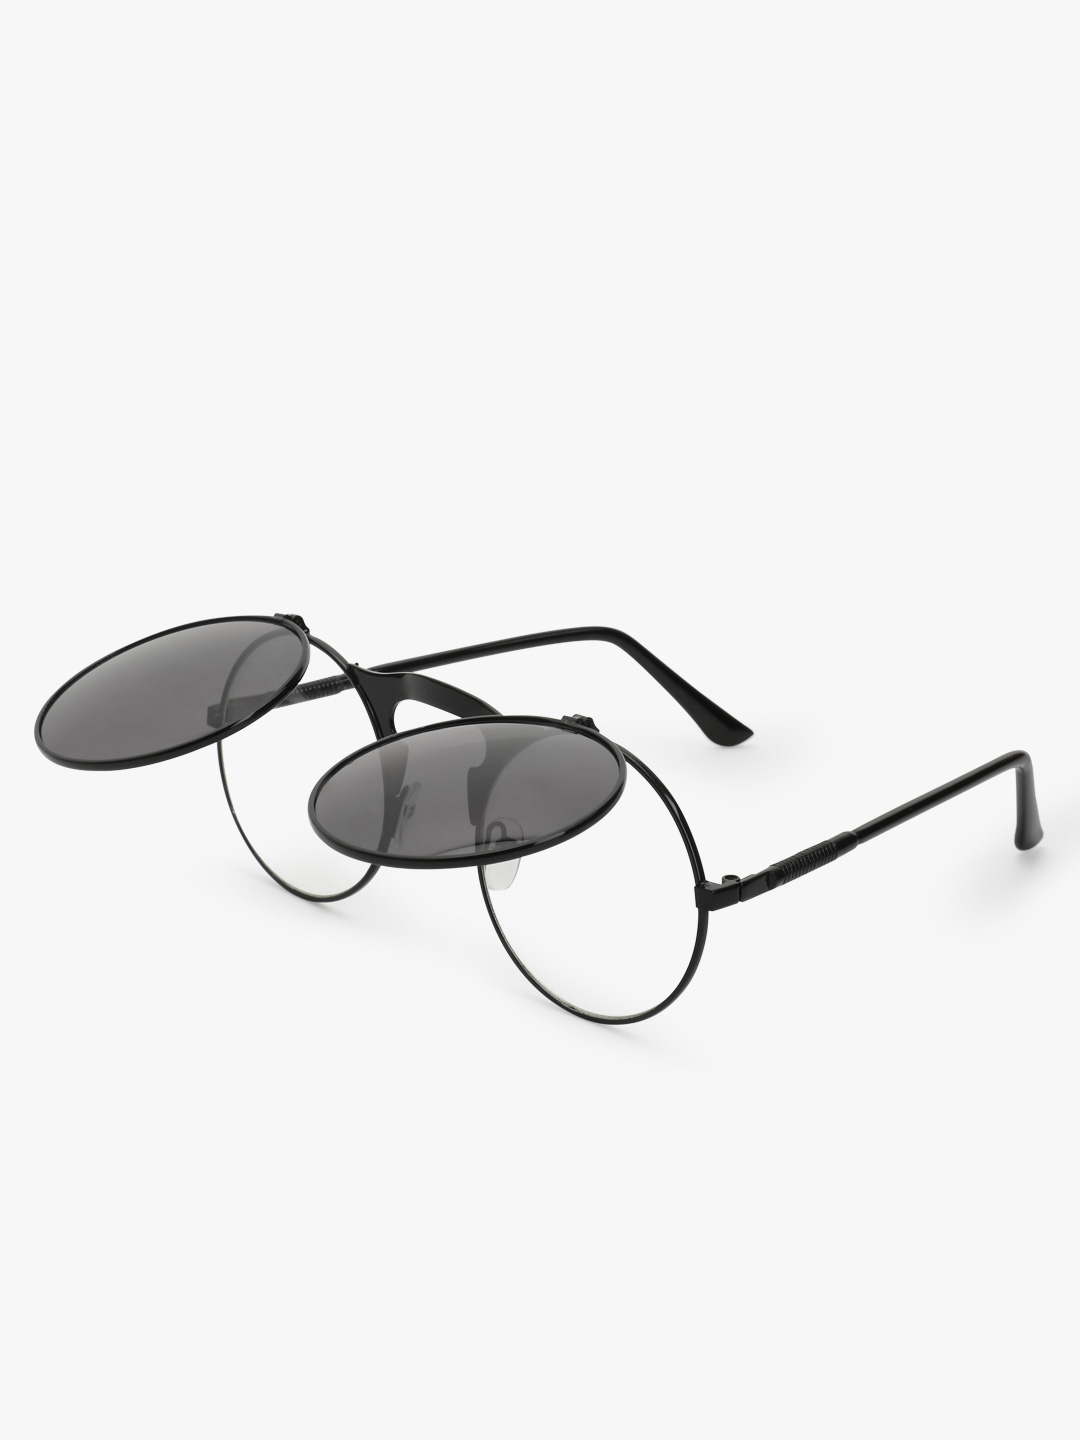 Sneak-a-Peek Black Double Framed Round Sunglasses 1